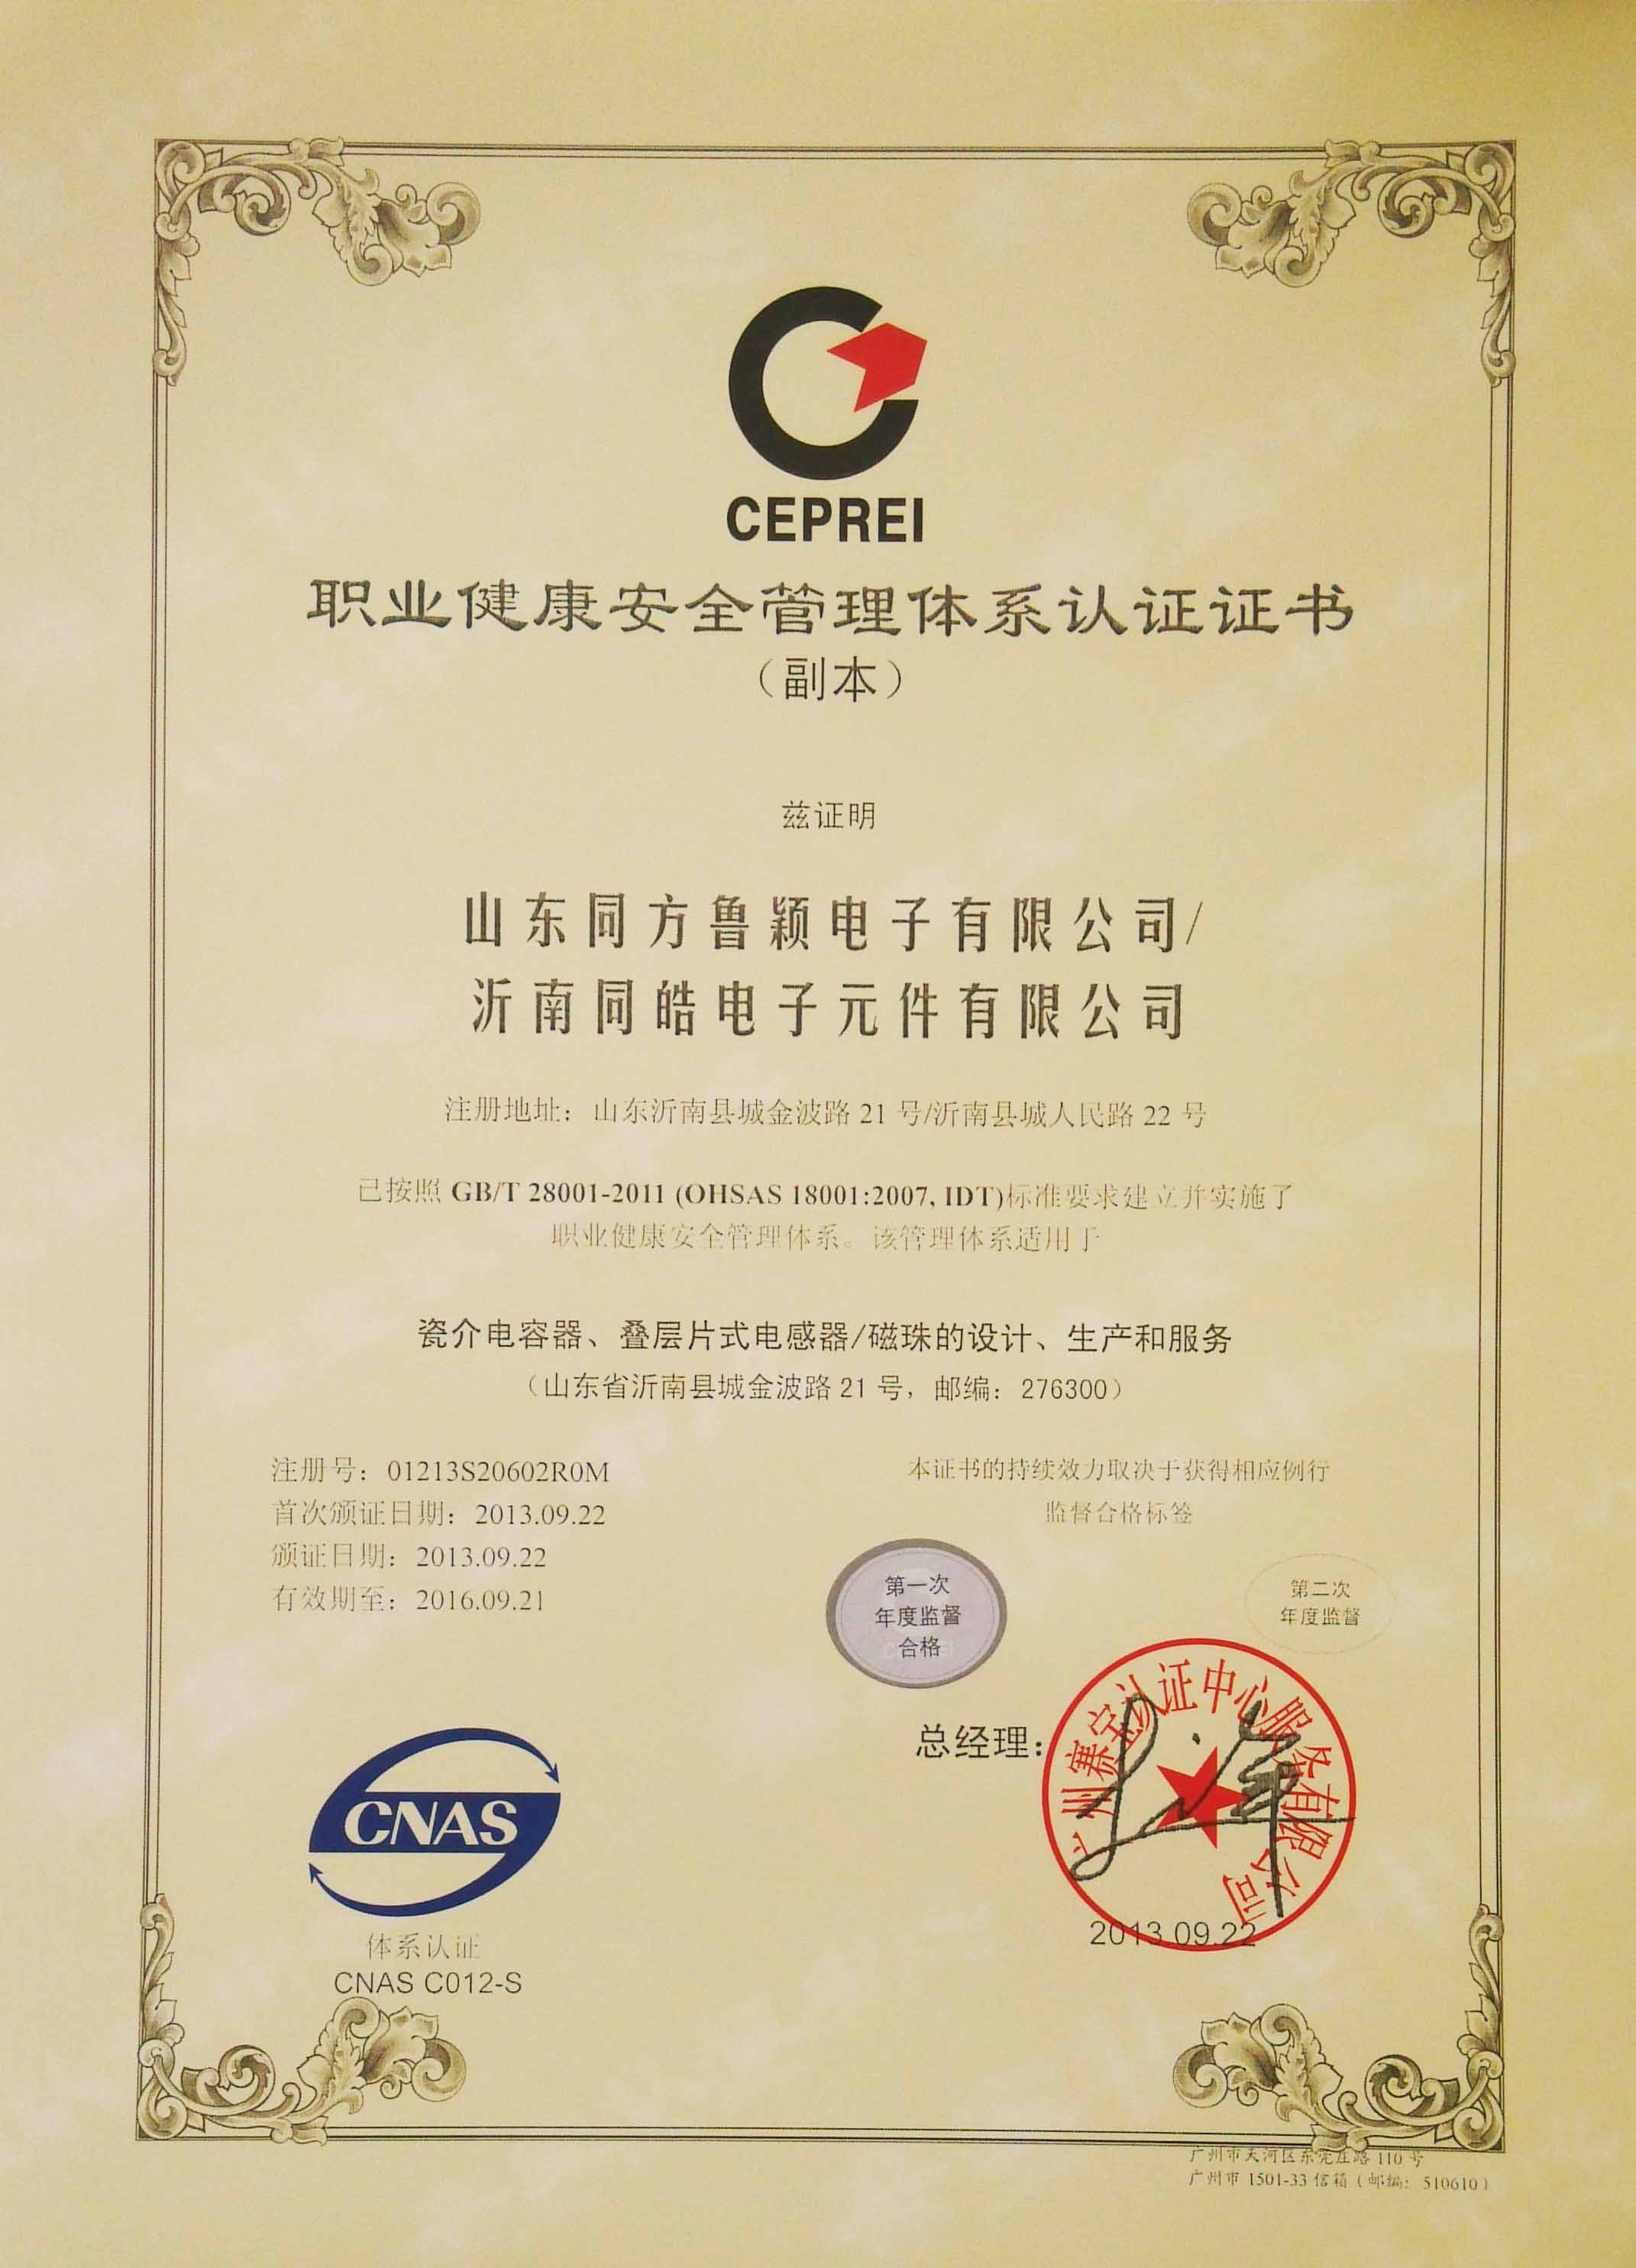 10 thousand and 8 occupation health safety certificate